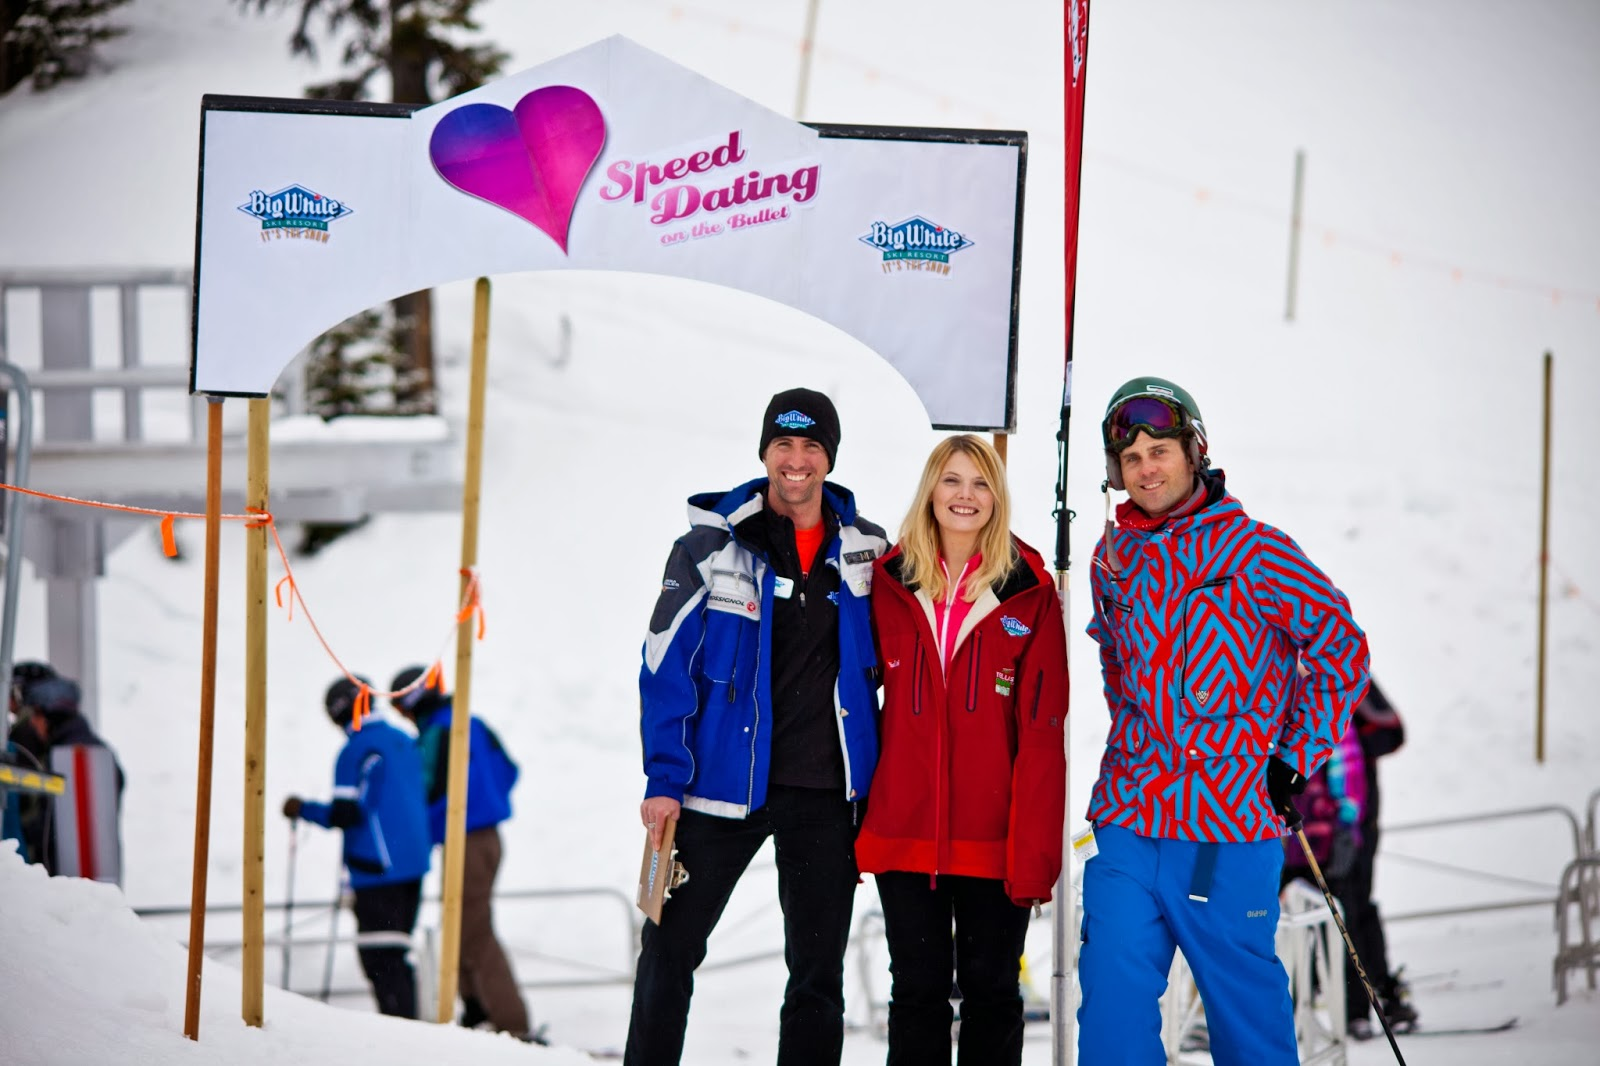 from Wayne speed dating skiing